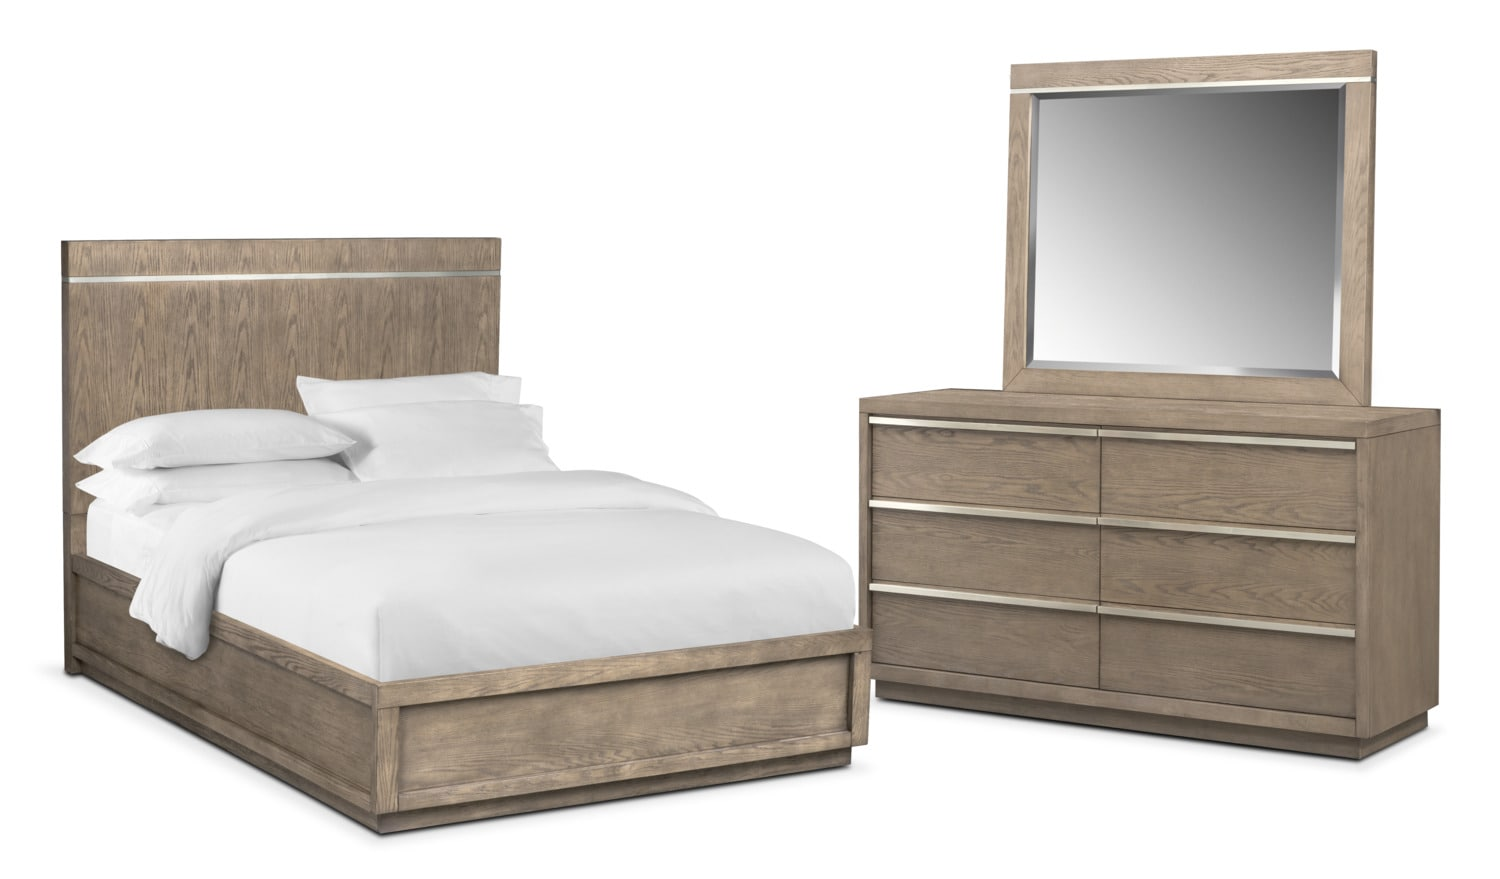 Gavin 5-Piece Queen Bedroom Set - Graystone